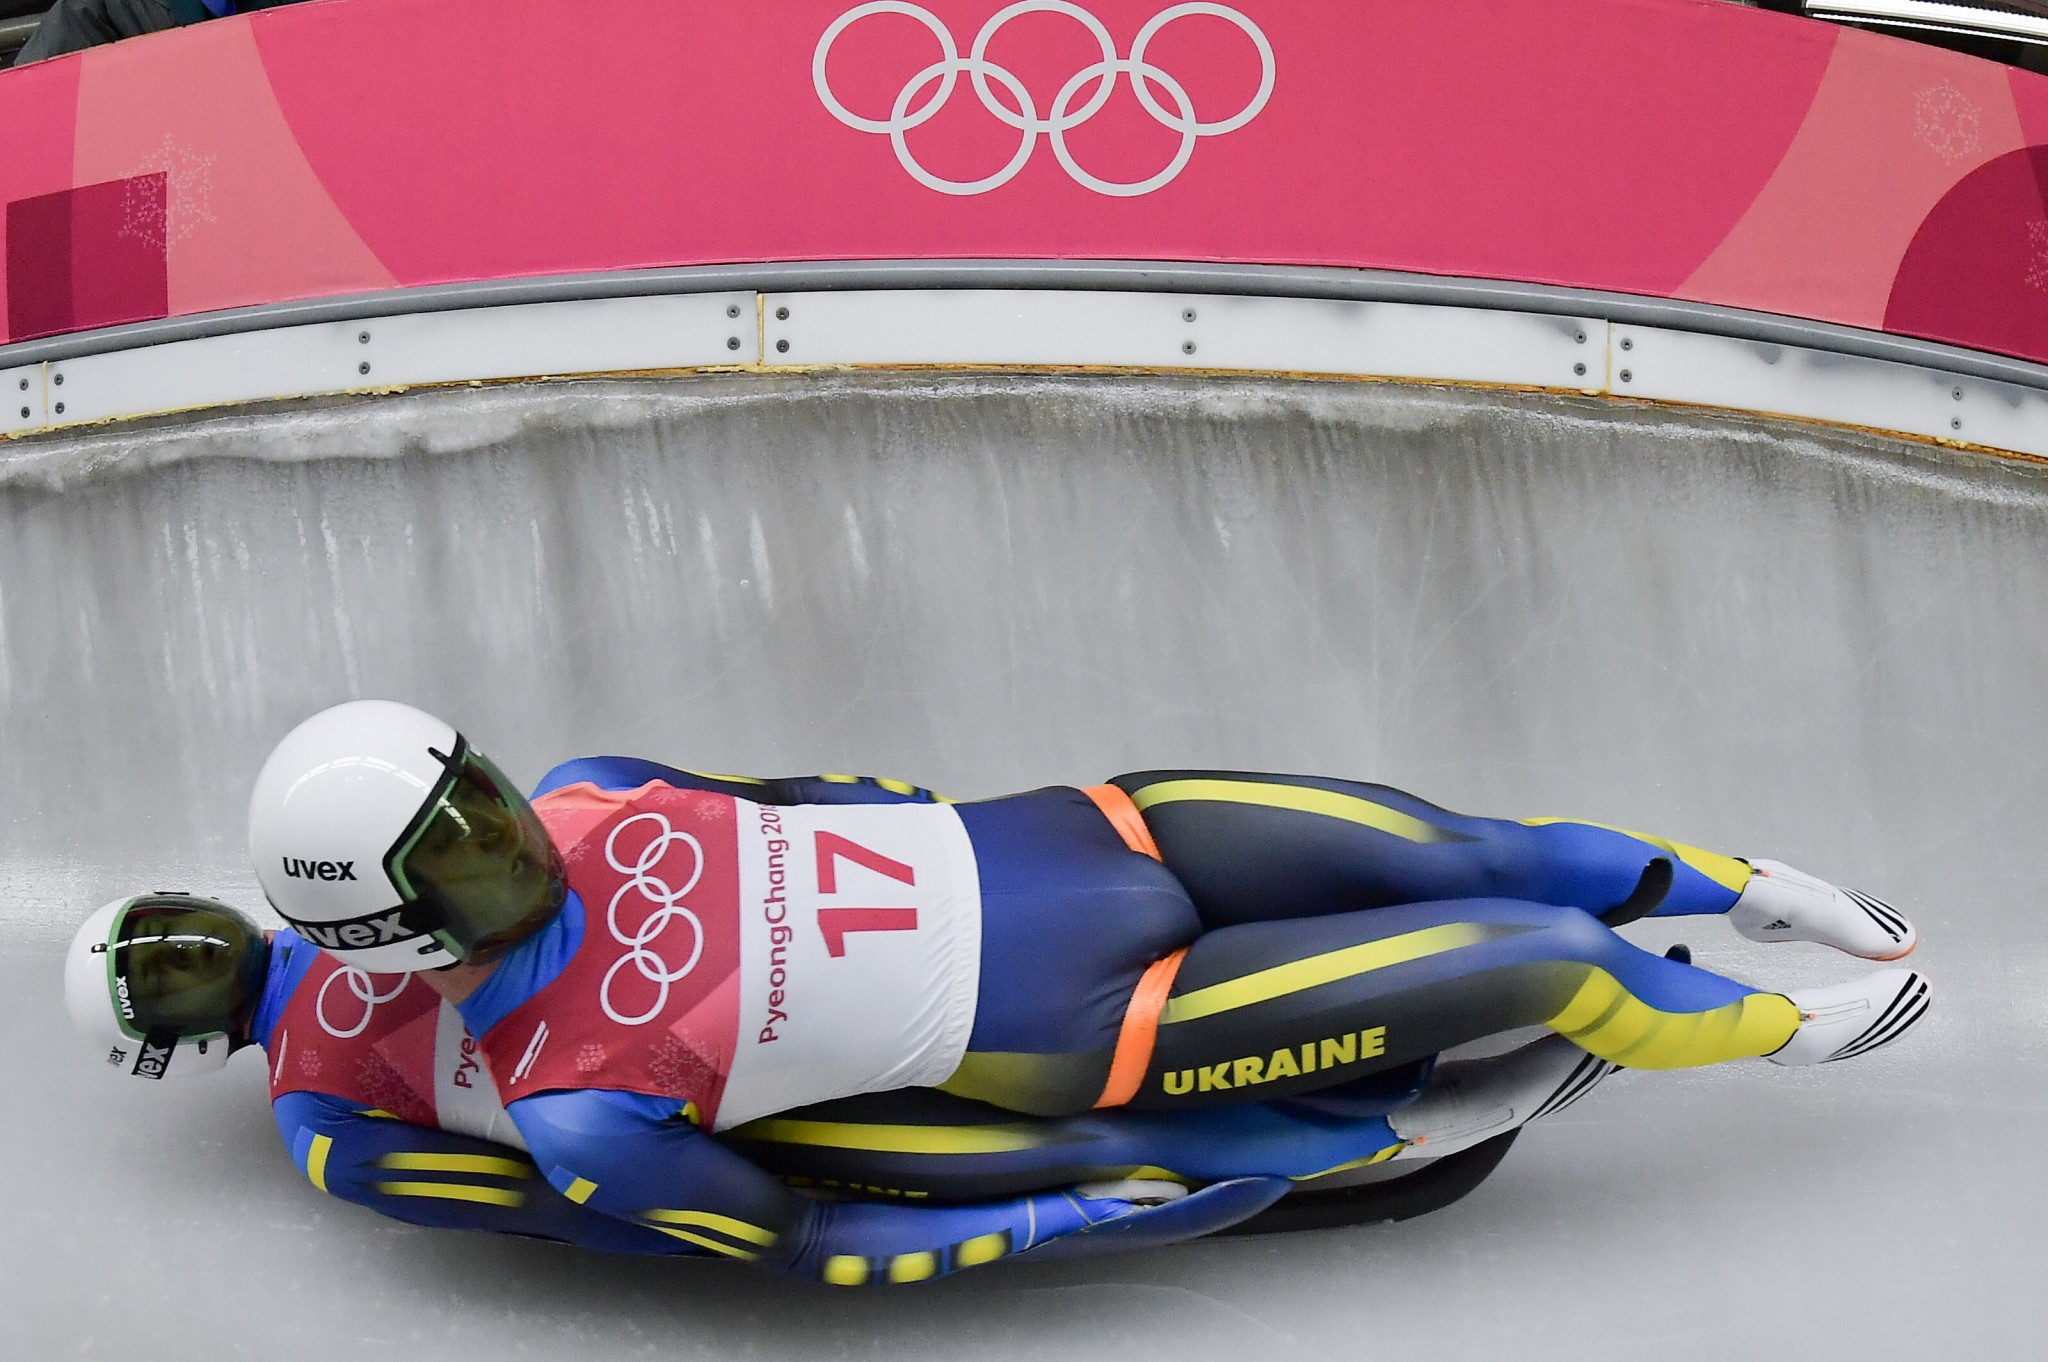 Ukraine finished last in all four luge events at last year's Winter Olympic Games in Pyeongchang ©Getty Images